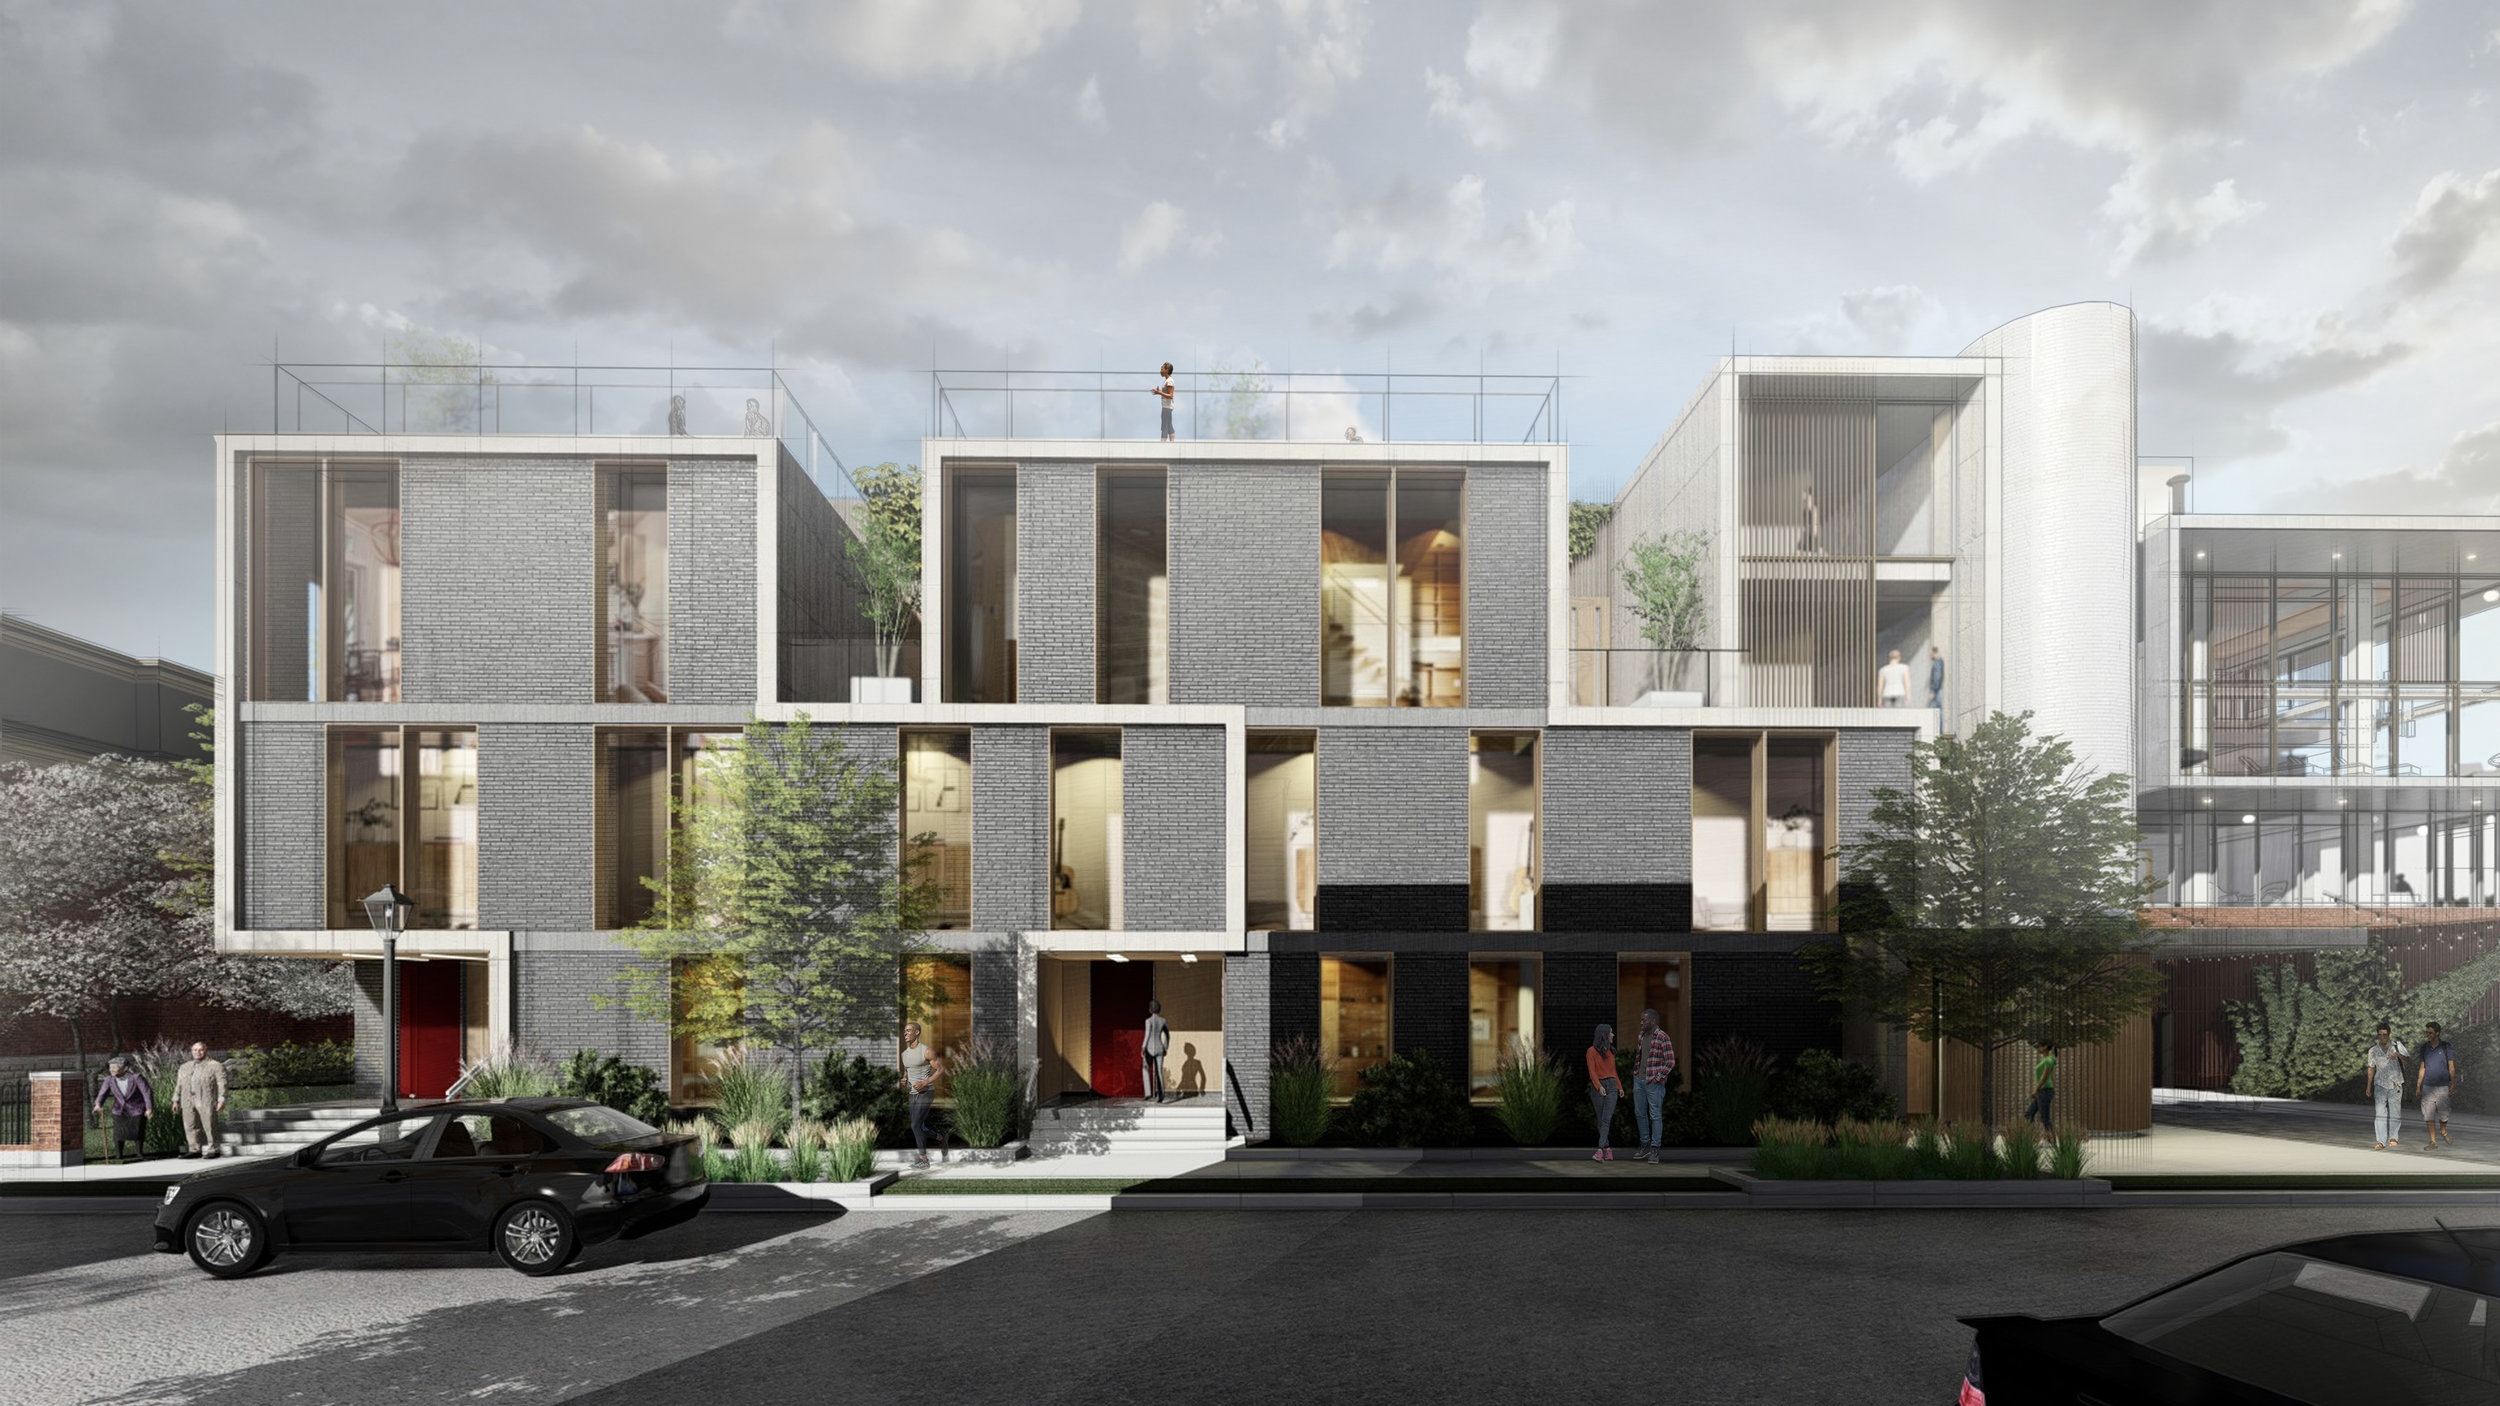 105 ALFRED ELEVATION - OOMBRA ARCHITECTS ©